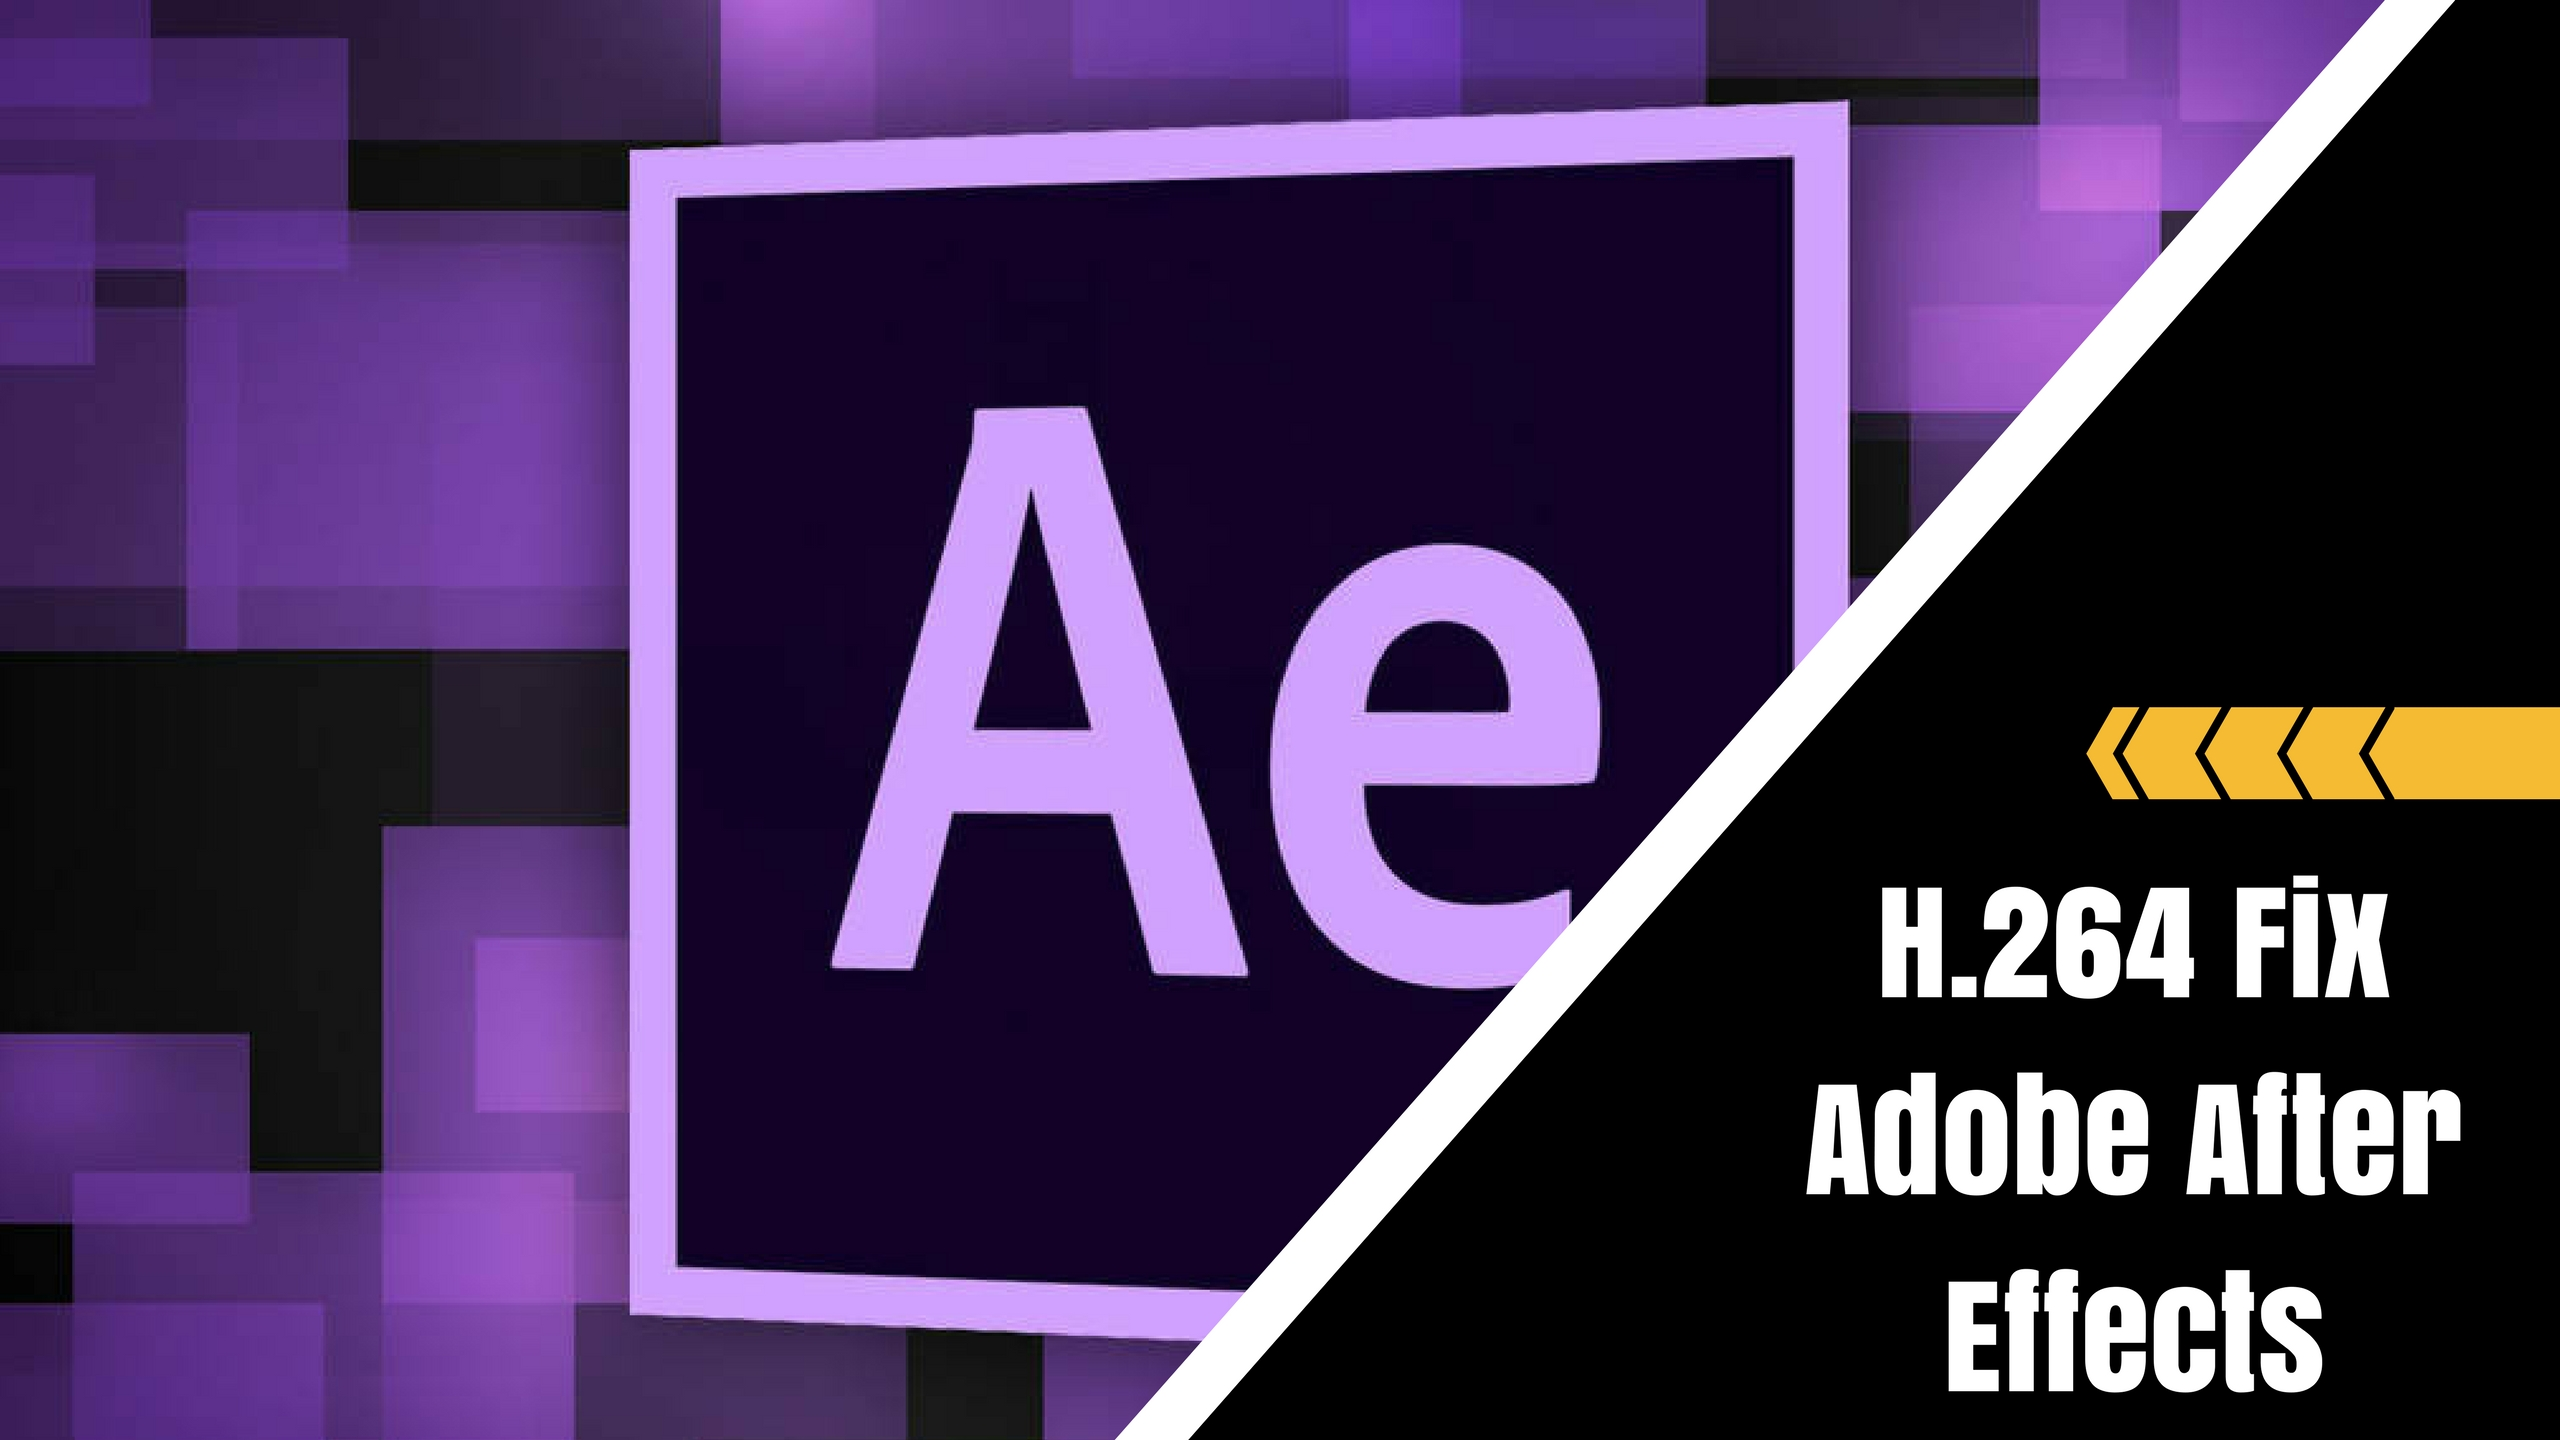 Fix h 264 Adobe After Effects!! | Techulk